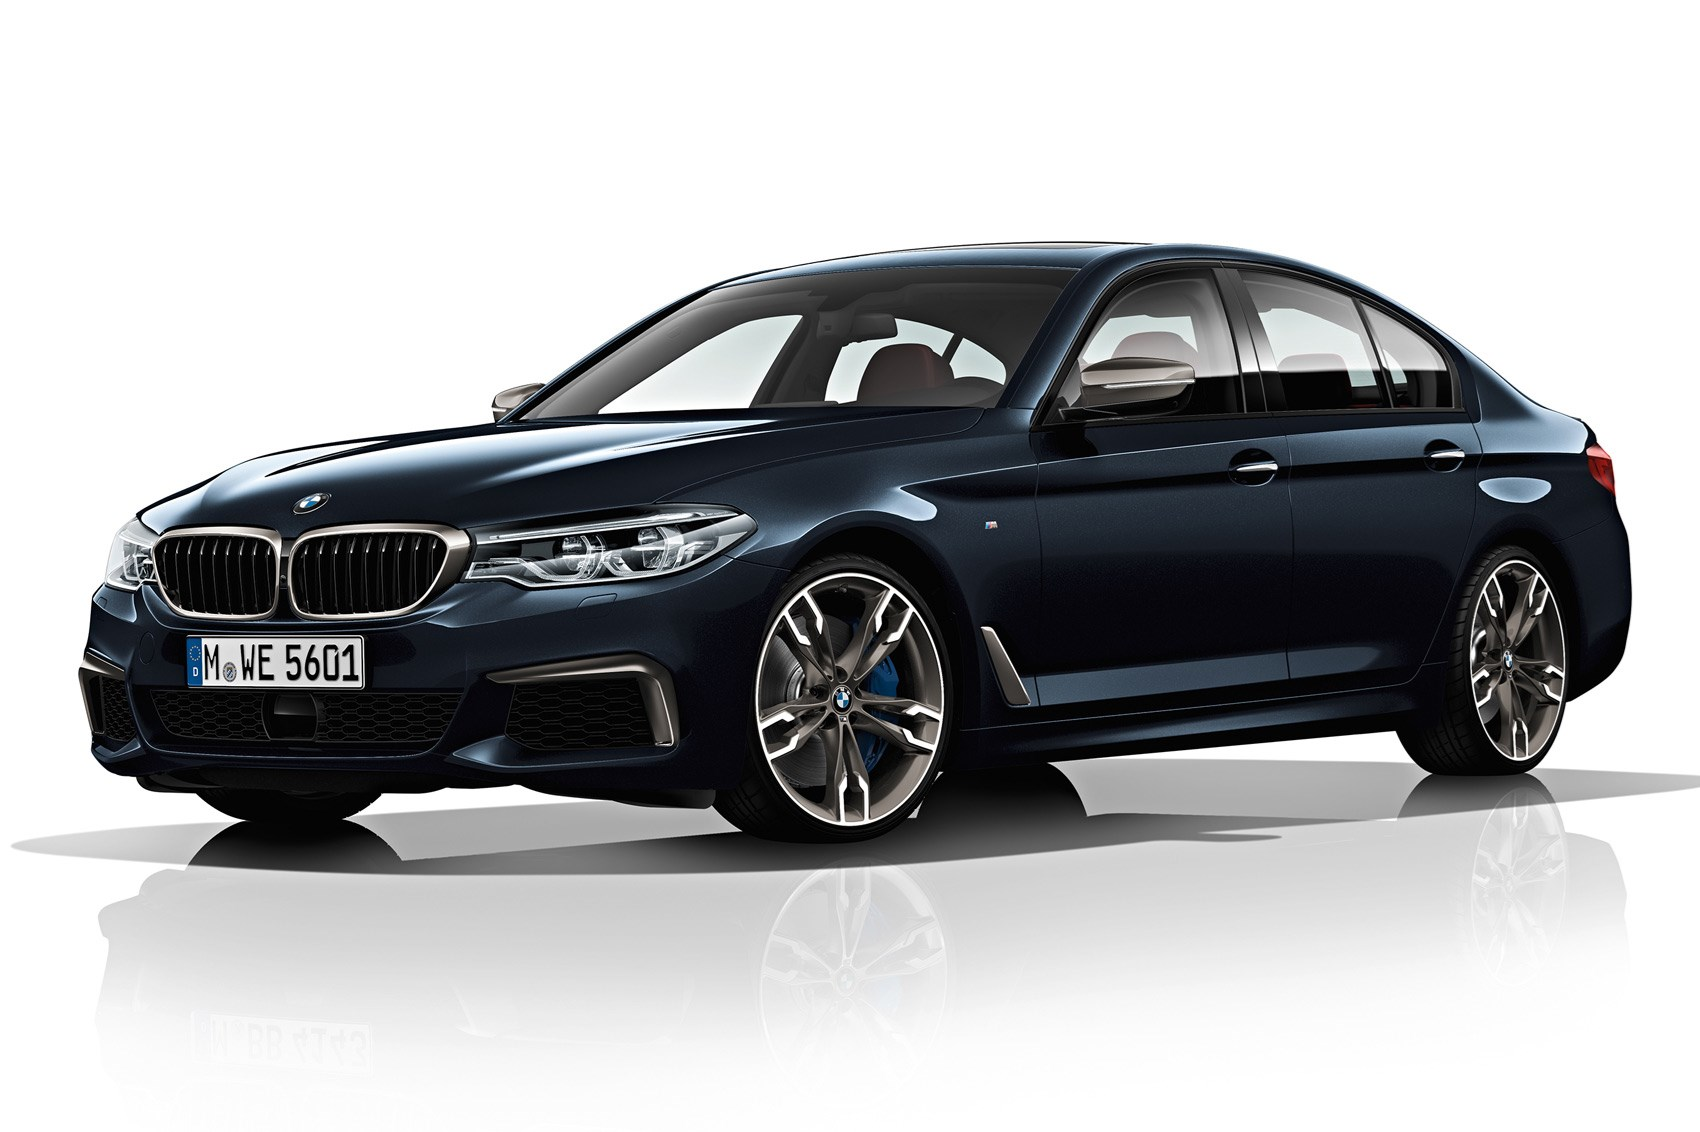 quad turbo bmw m550d xdrive is ultimate diesel q car by car magazine. Black Bedroom Furniture Sets. Home Design Ideas